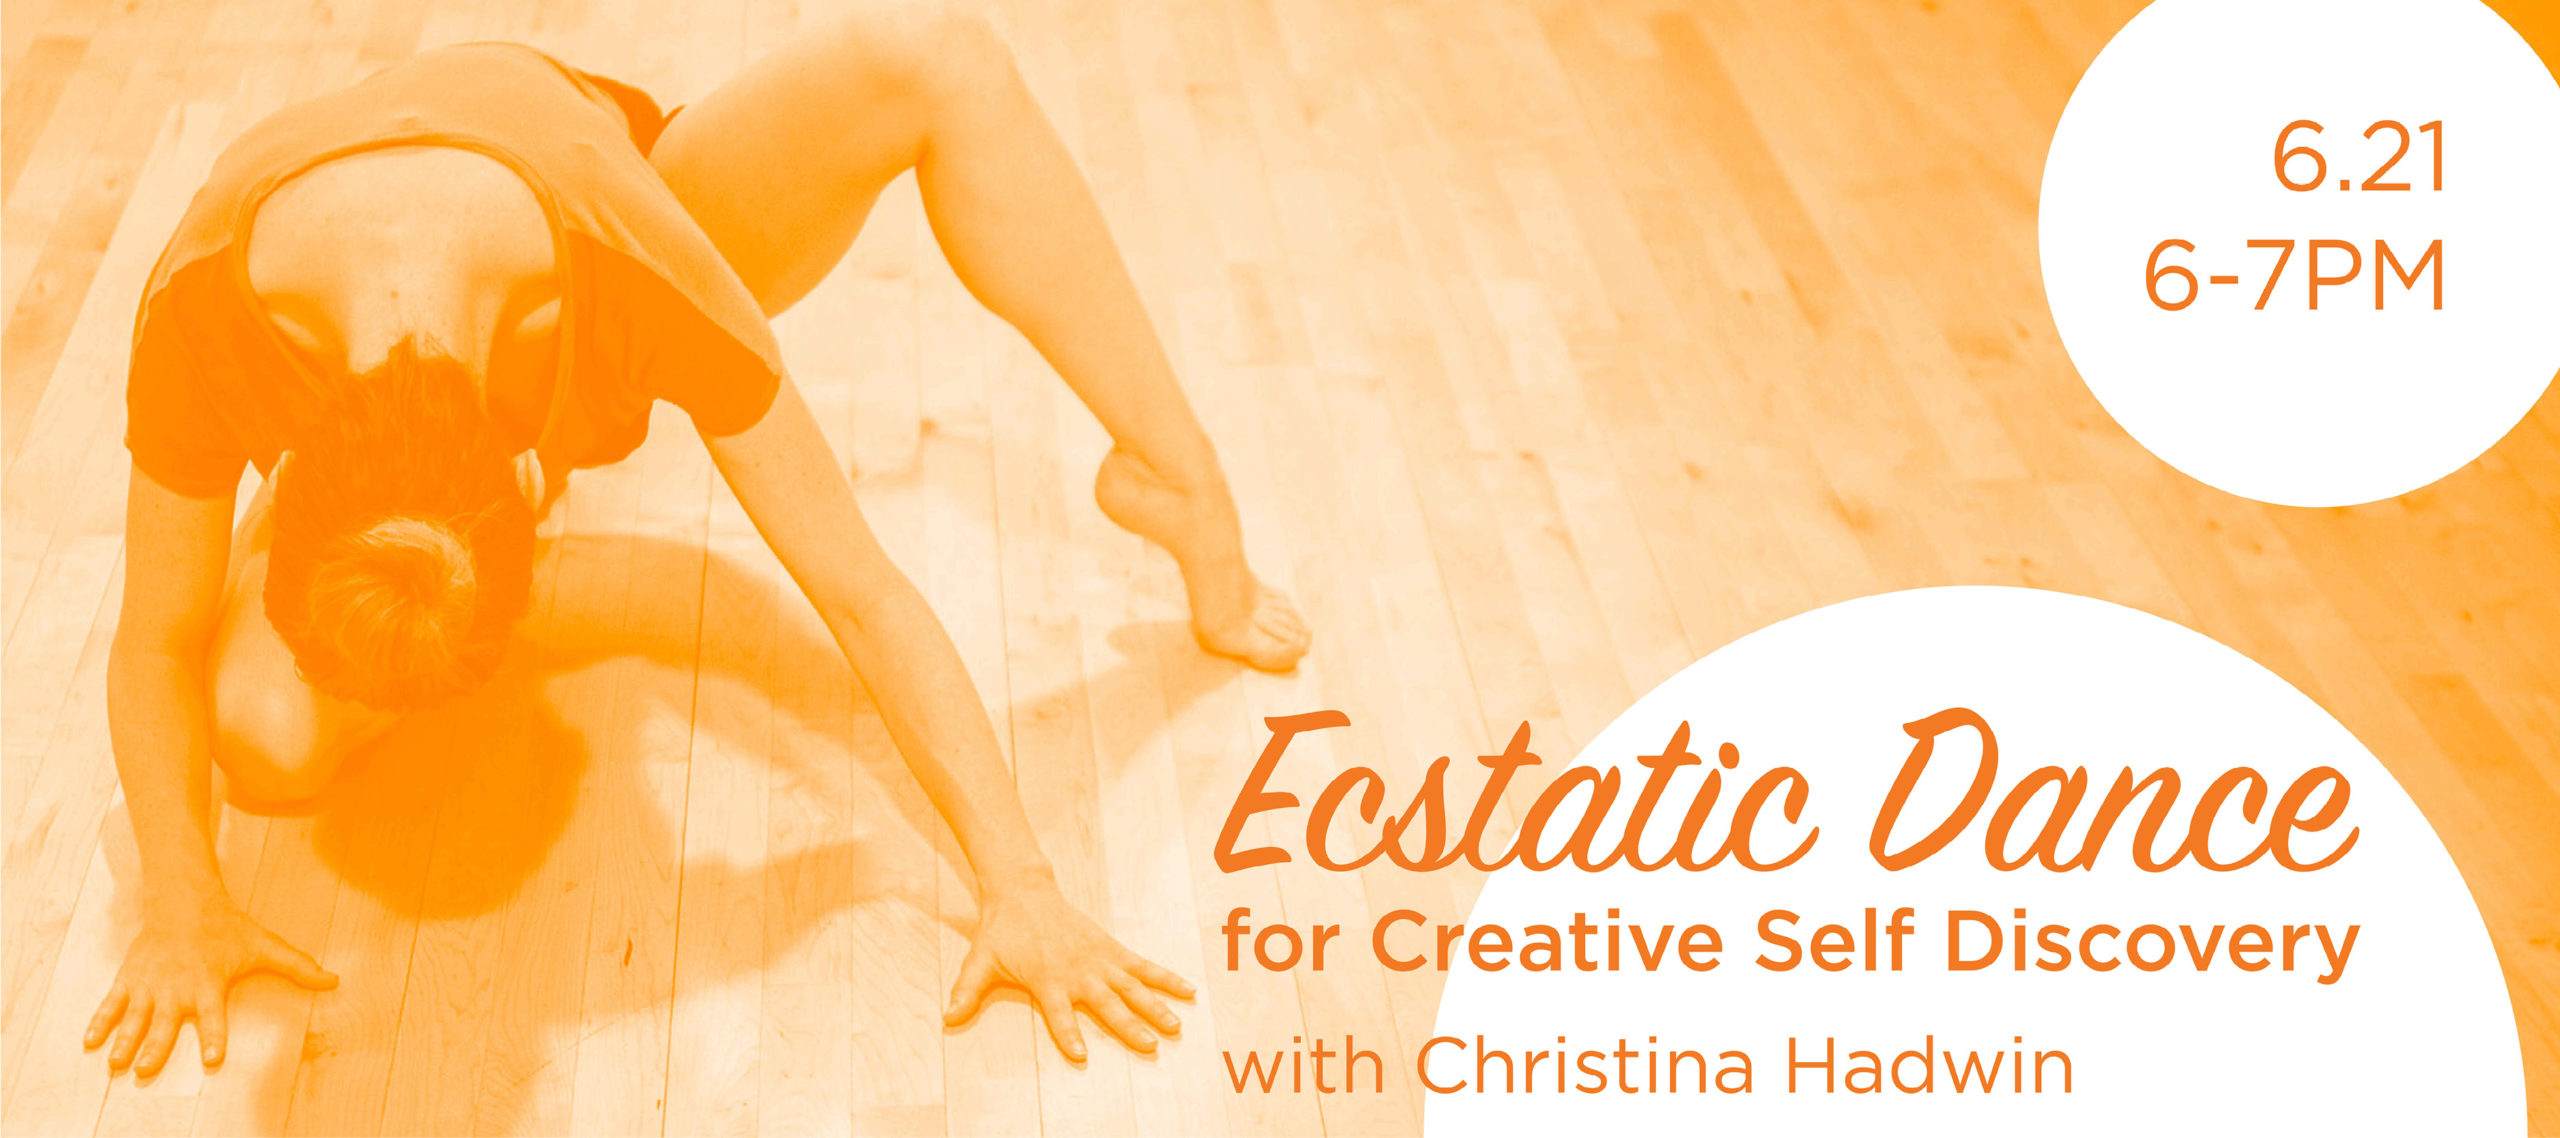 Ecstatic Dance for Creative Discovery with Christina Hadwin, June 21 from 6 to 7PM